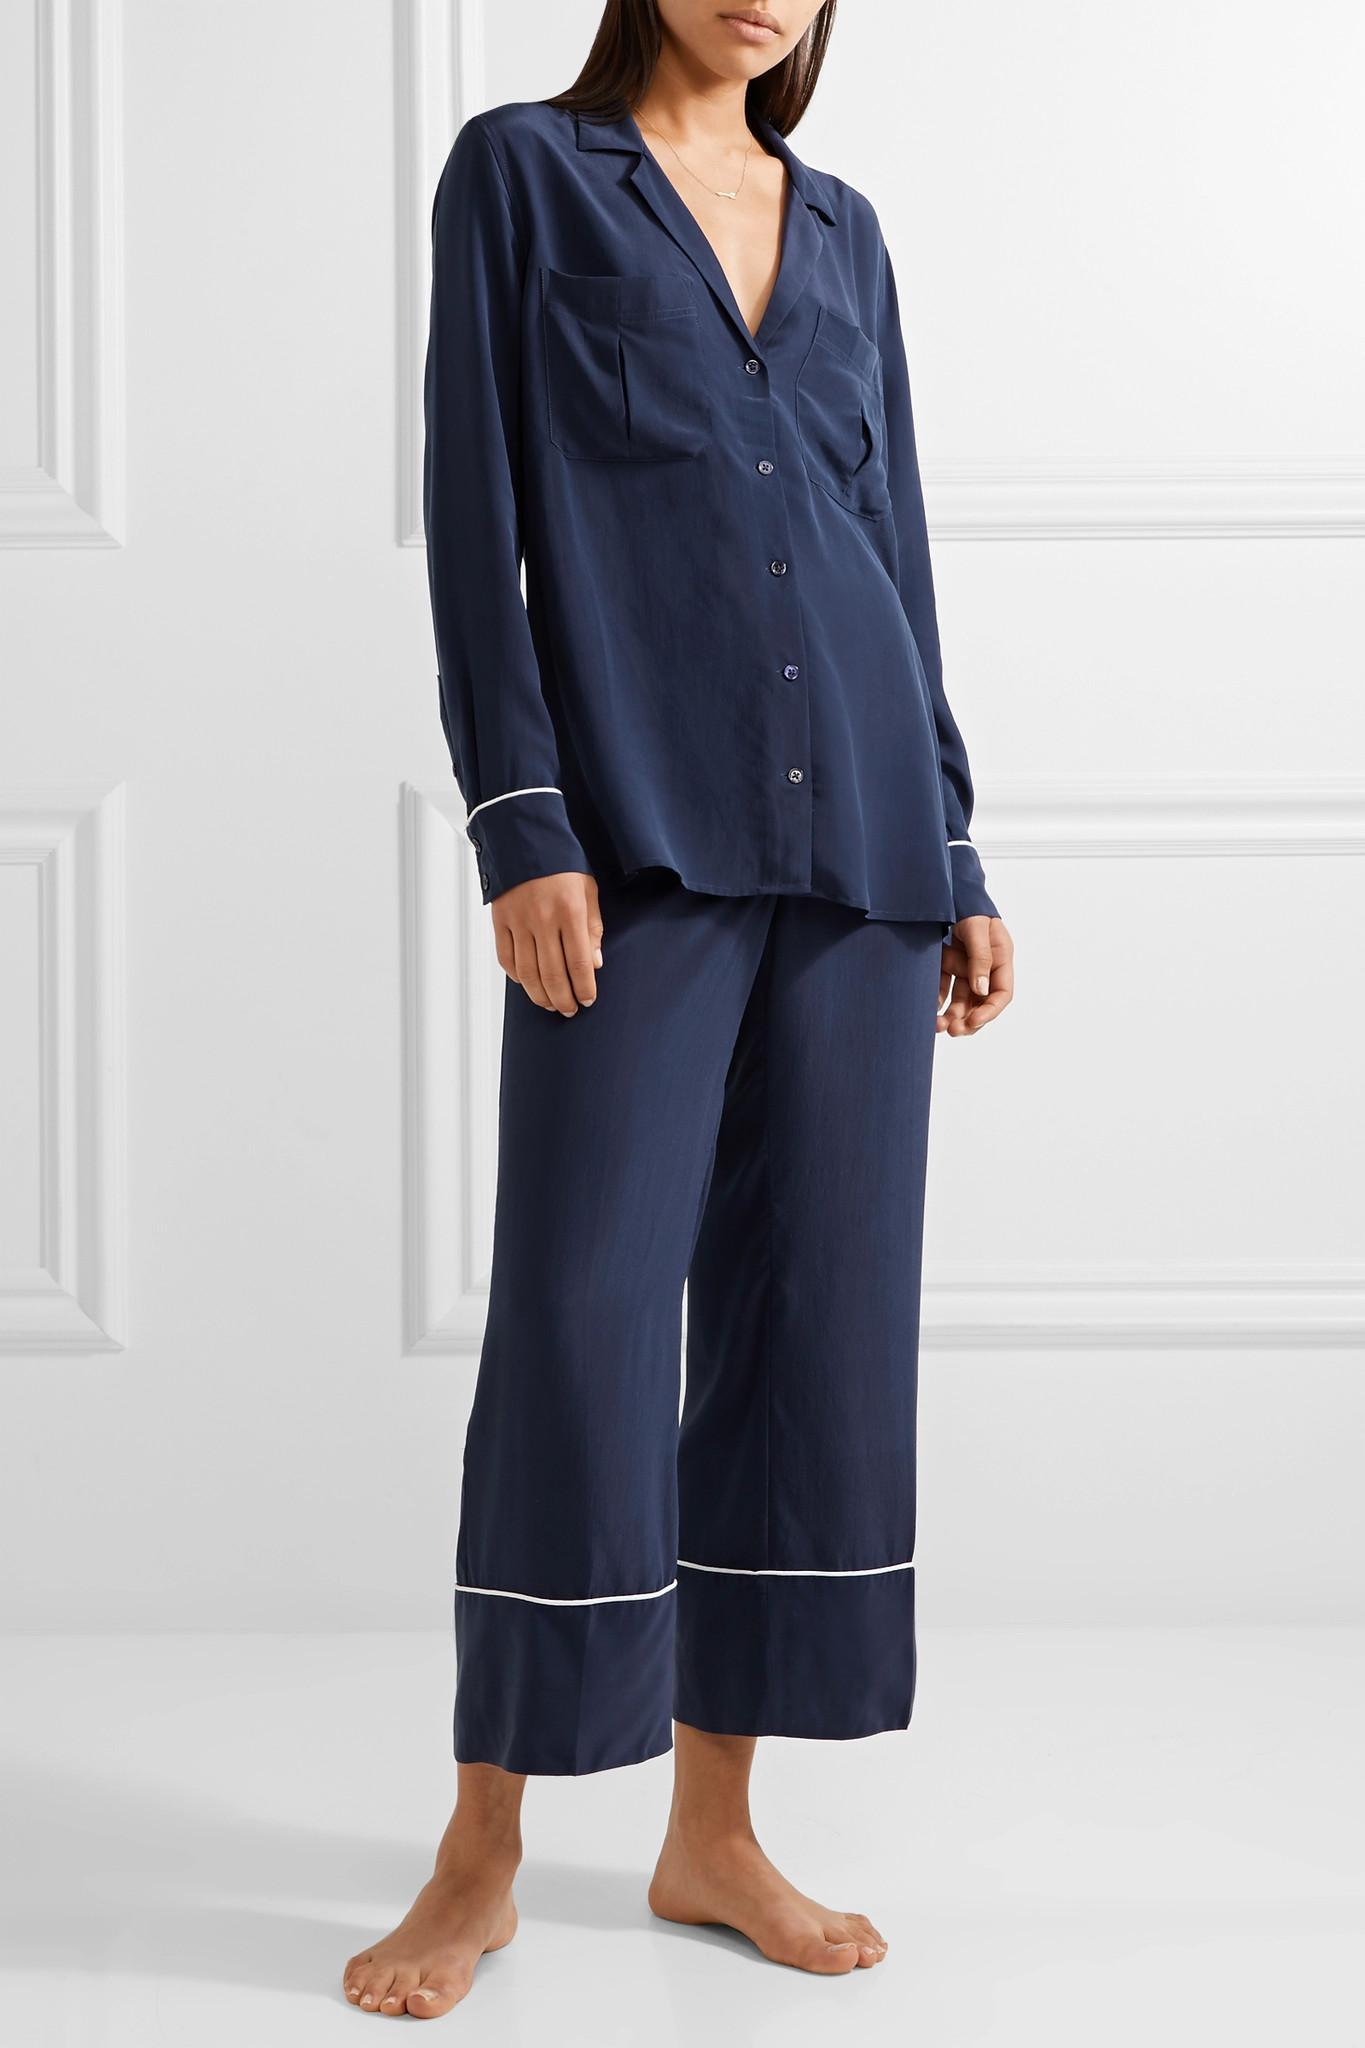 Lyst - Equipment Sonny Washed-silk Pajama Set in Blue 735309361